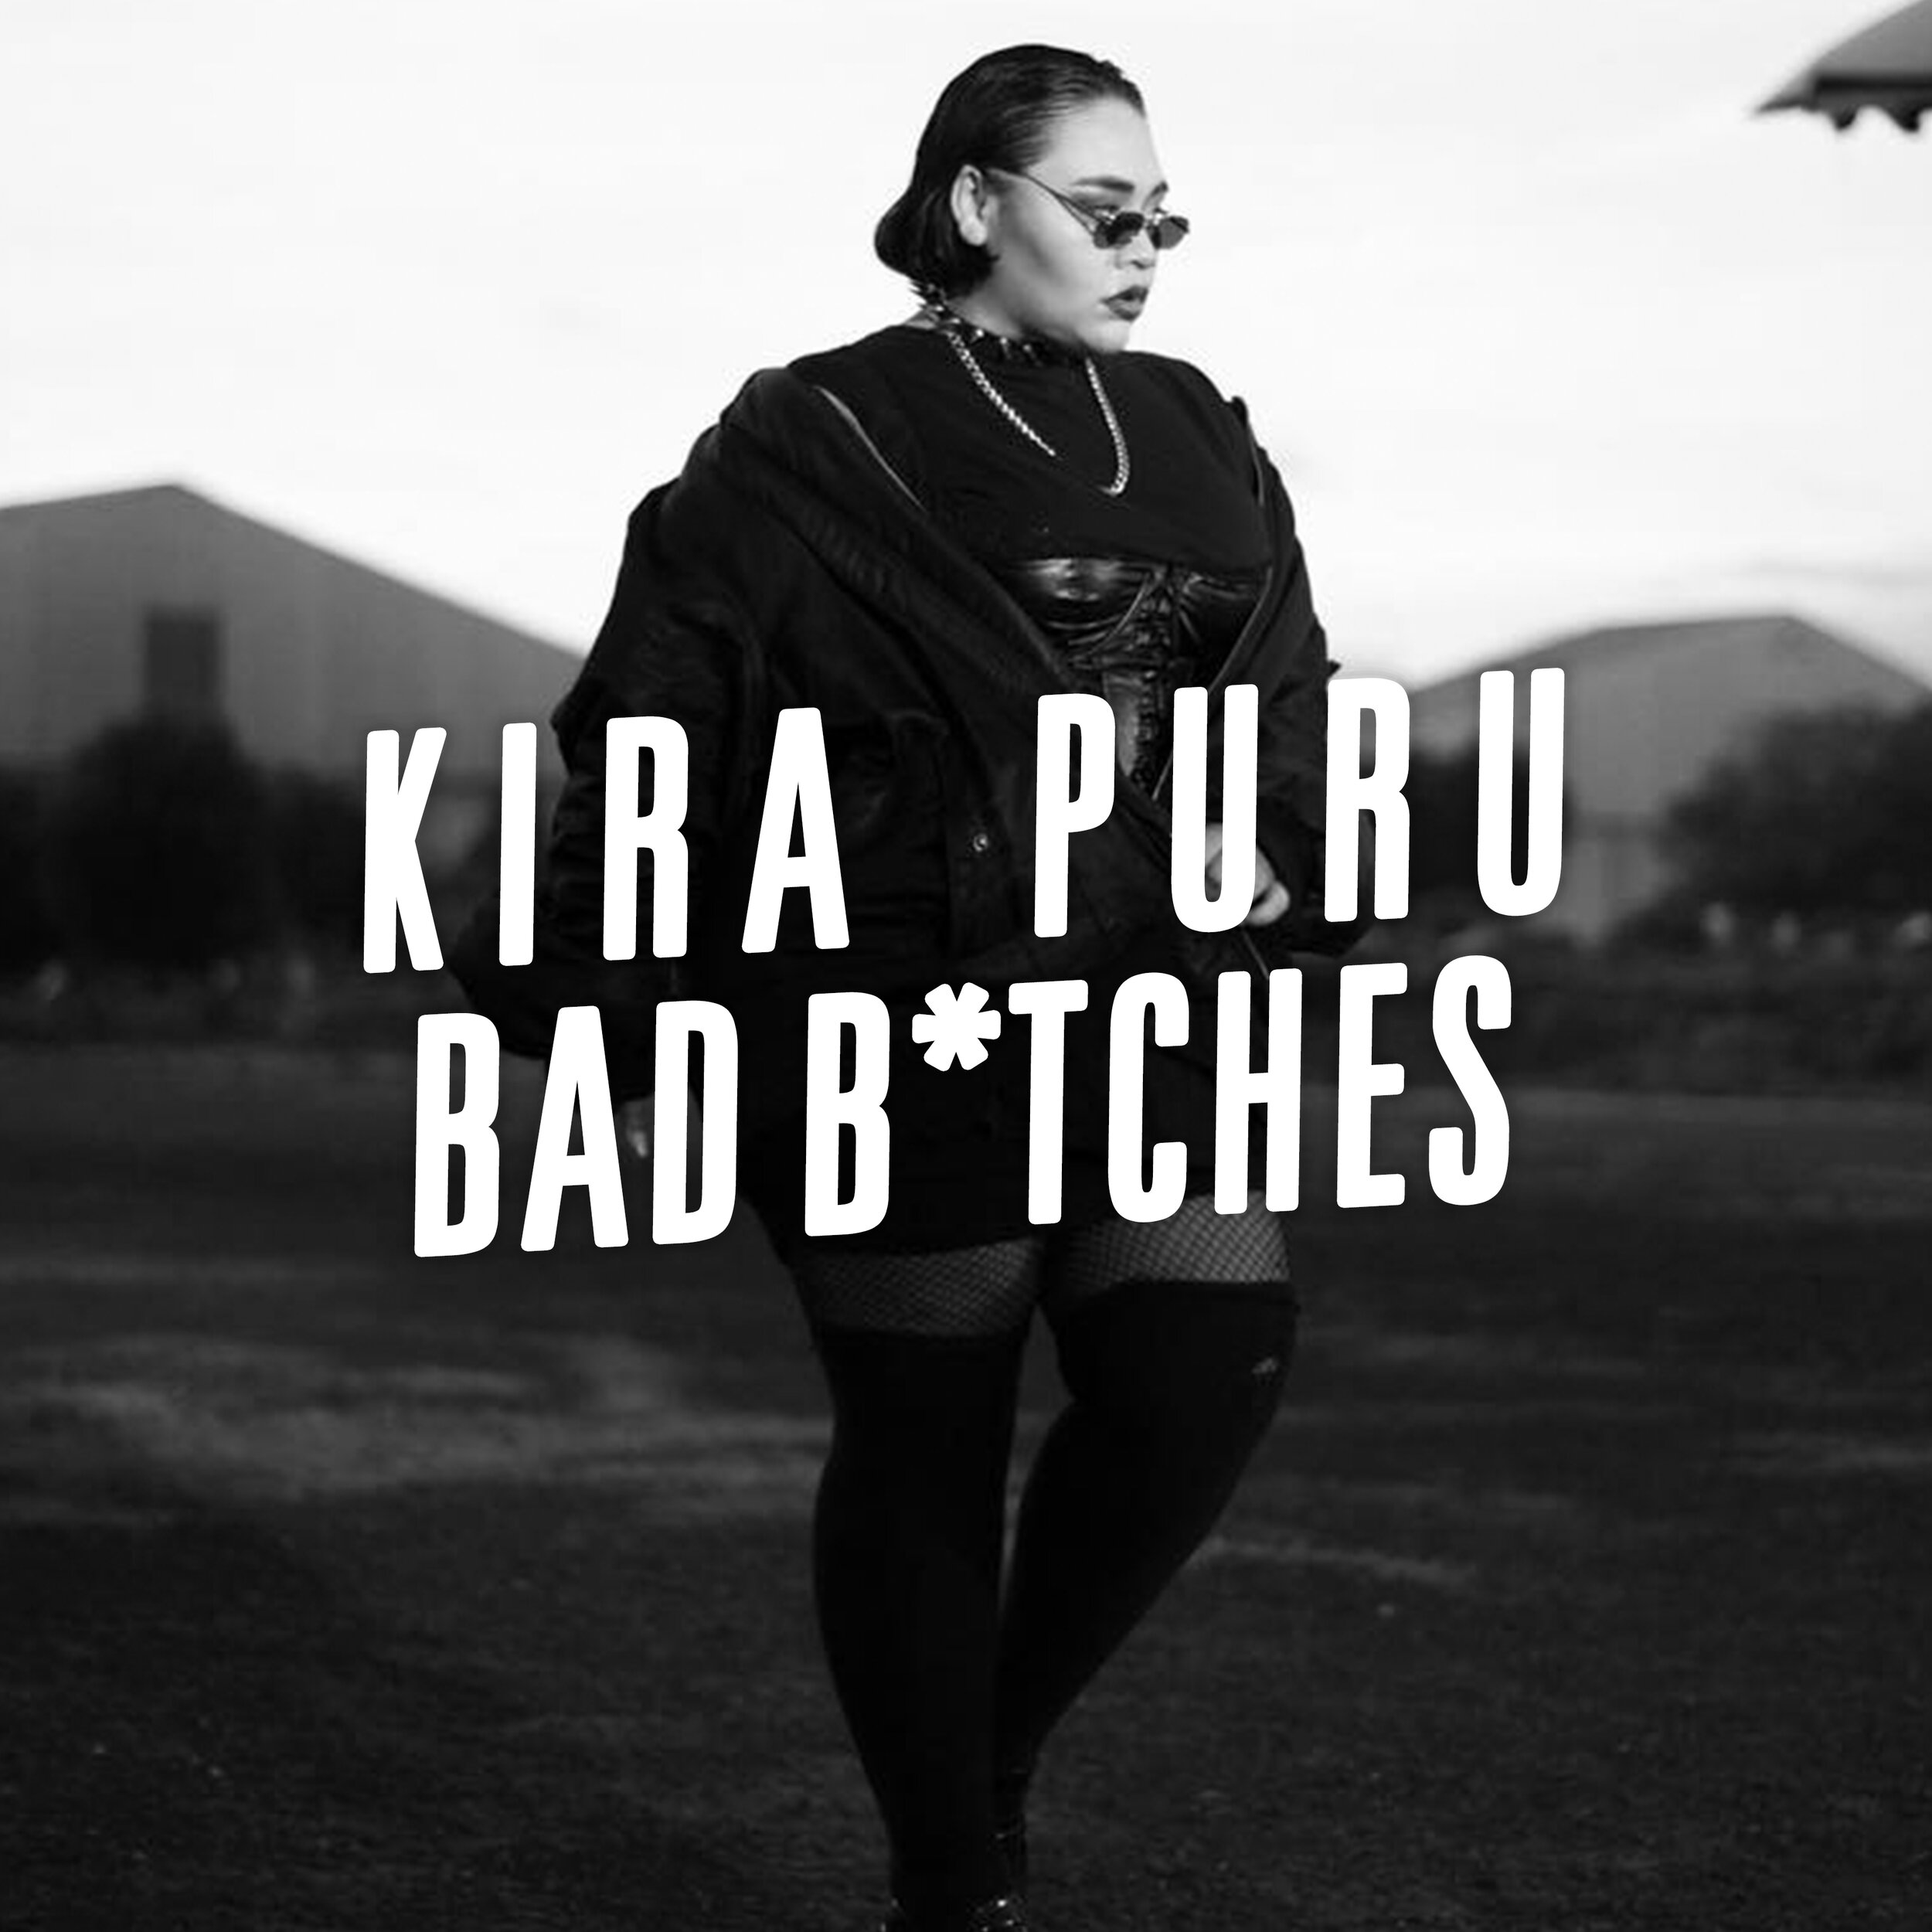 Bad B*tches - Listen on Spotify >>